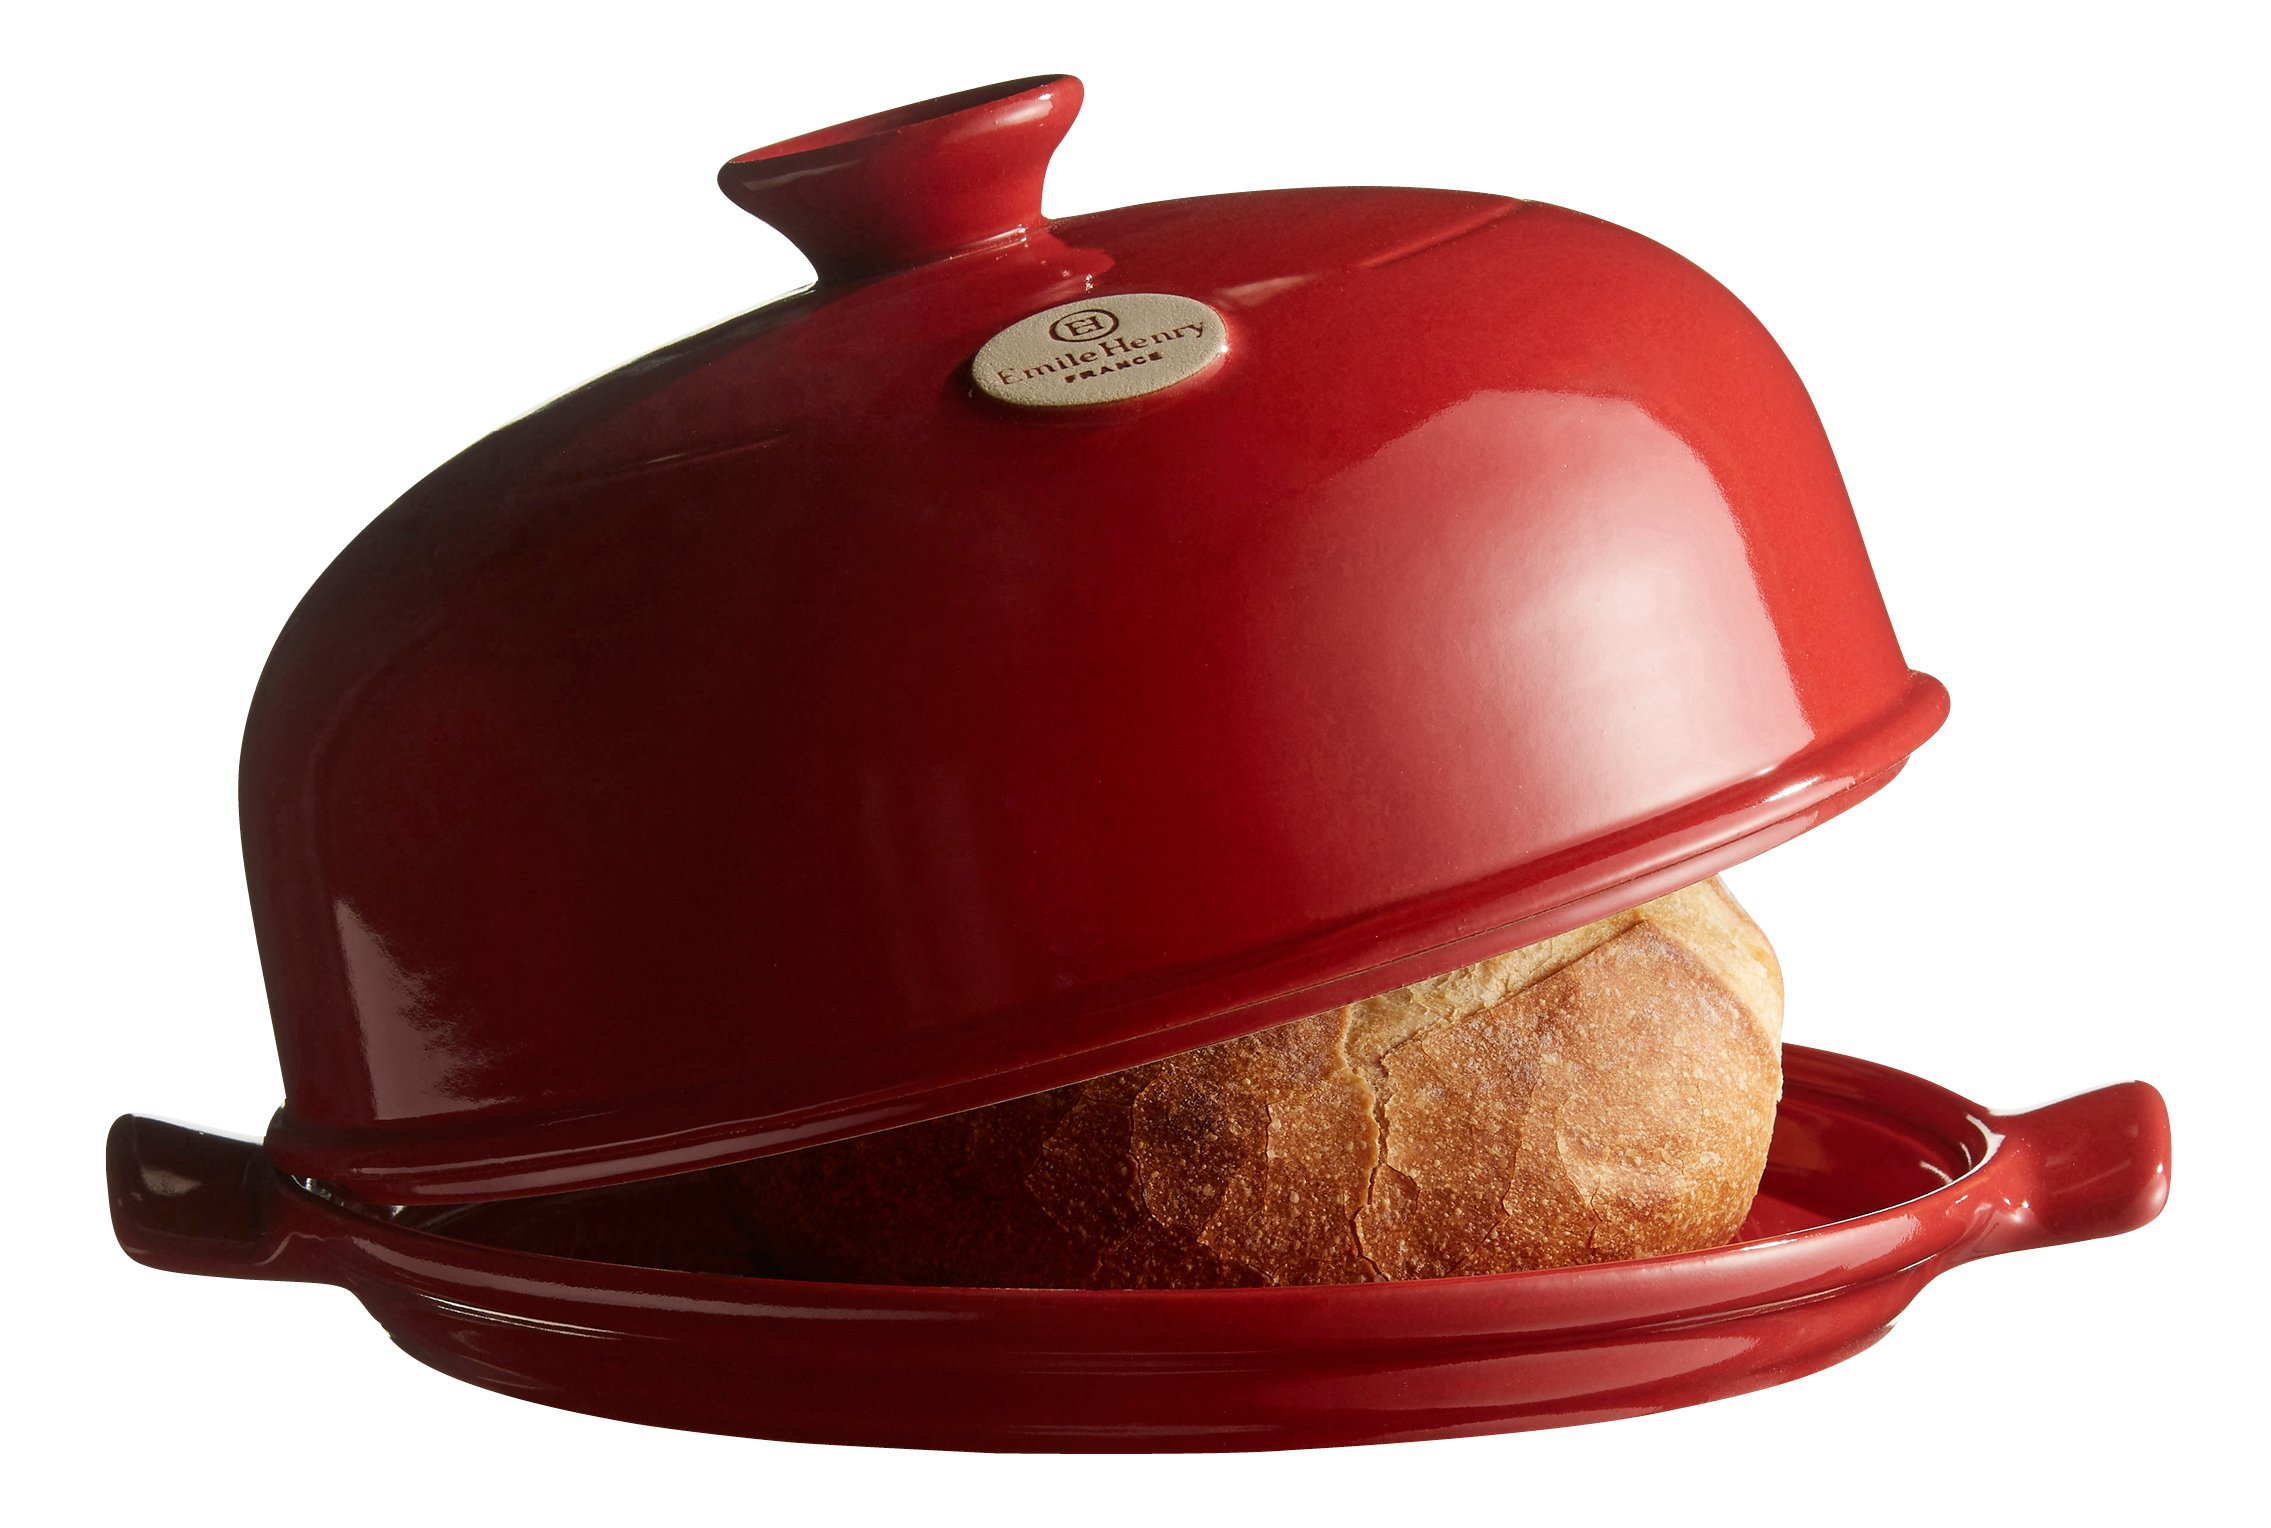 Emile Henry Made In France Flame Bread Cloche, 13.2 x 11.2'', Burgundy